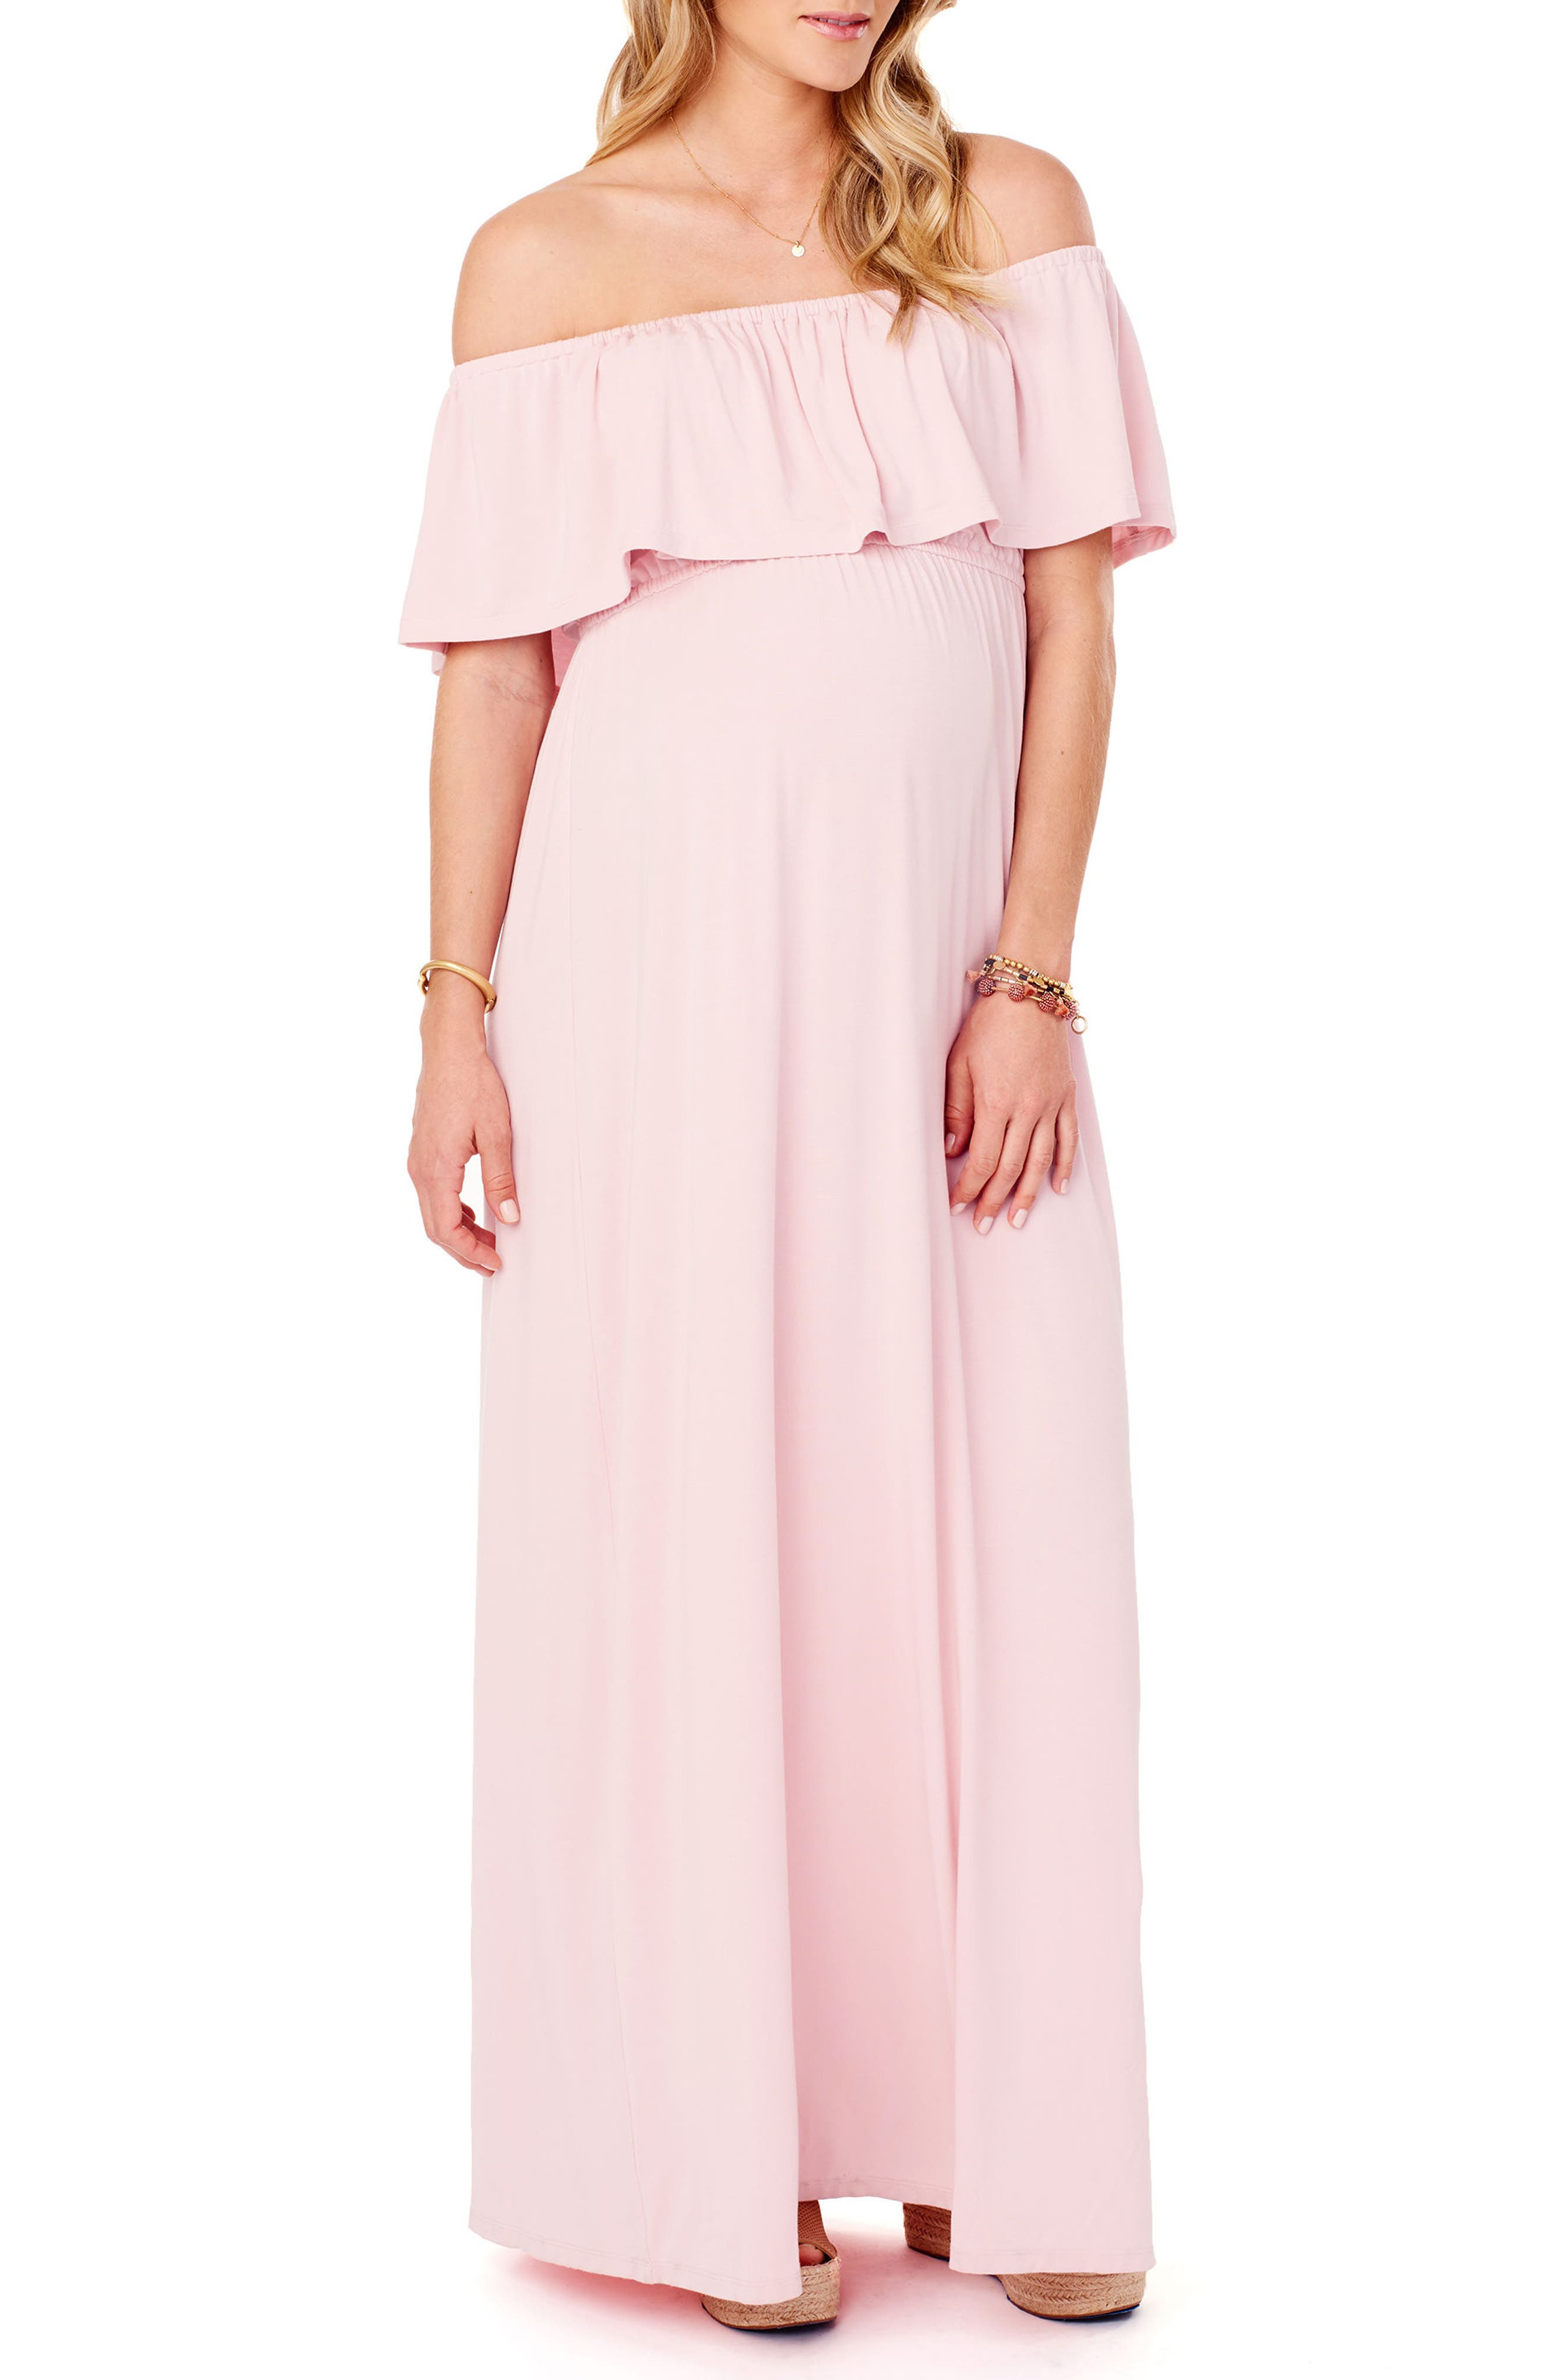 Womens pink maternity clothing nordstrom ombrellifo Choice Image